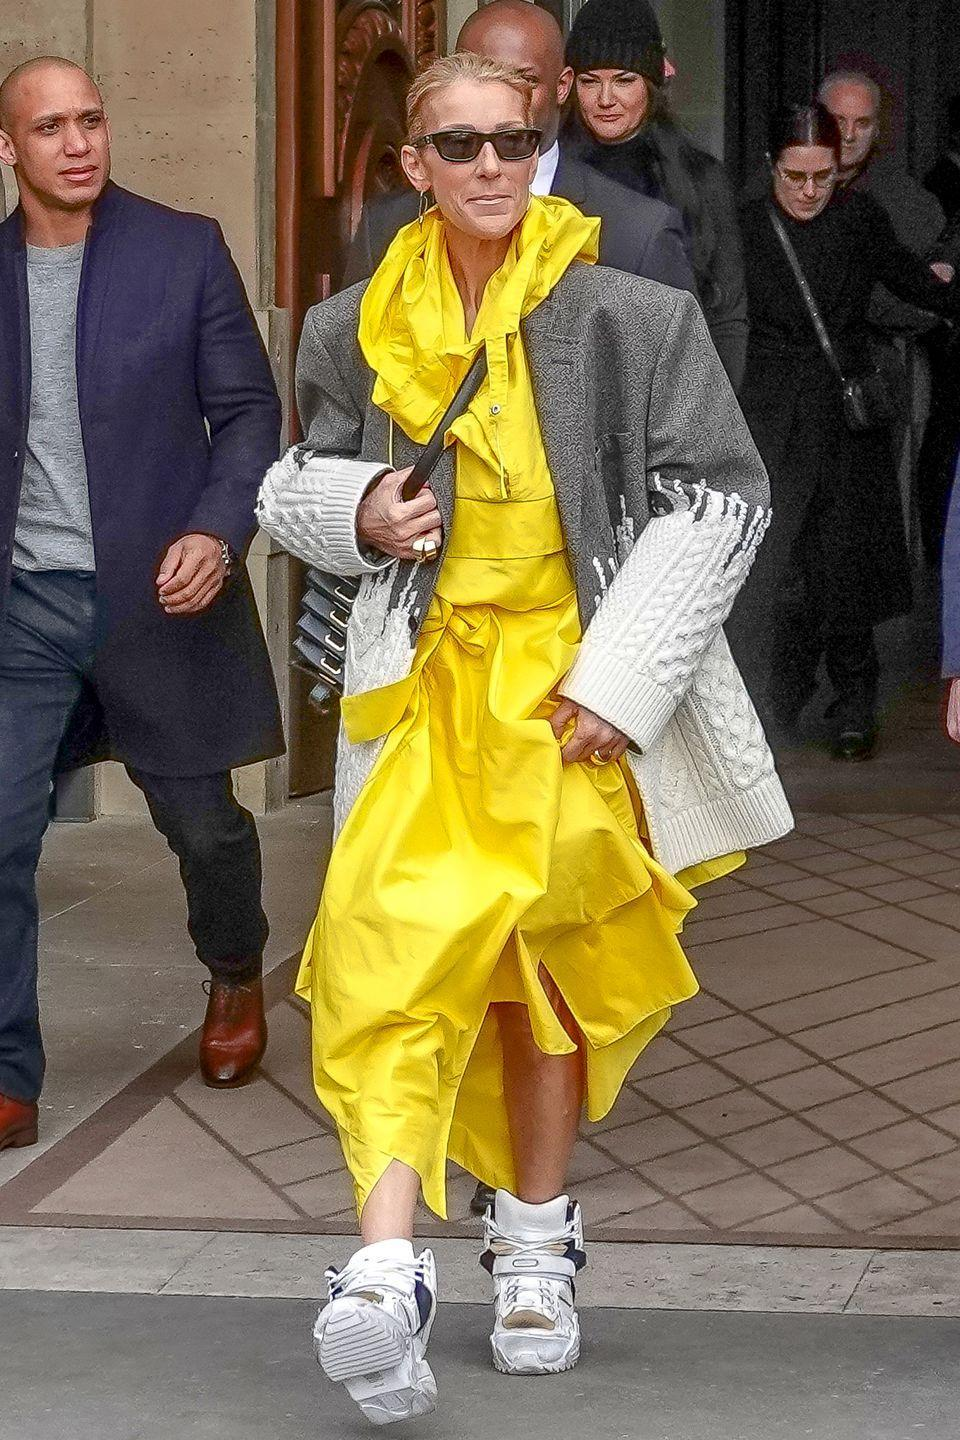 <p>Perhaps a nod to Billie Eilish's signature oversized wardrobe, Dion stepped out in Paris wearing a boxy grey blazer, bright yellow dress, and chunky sneakers.</p>